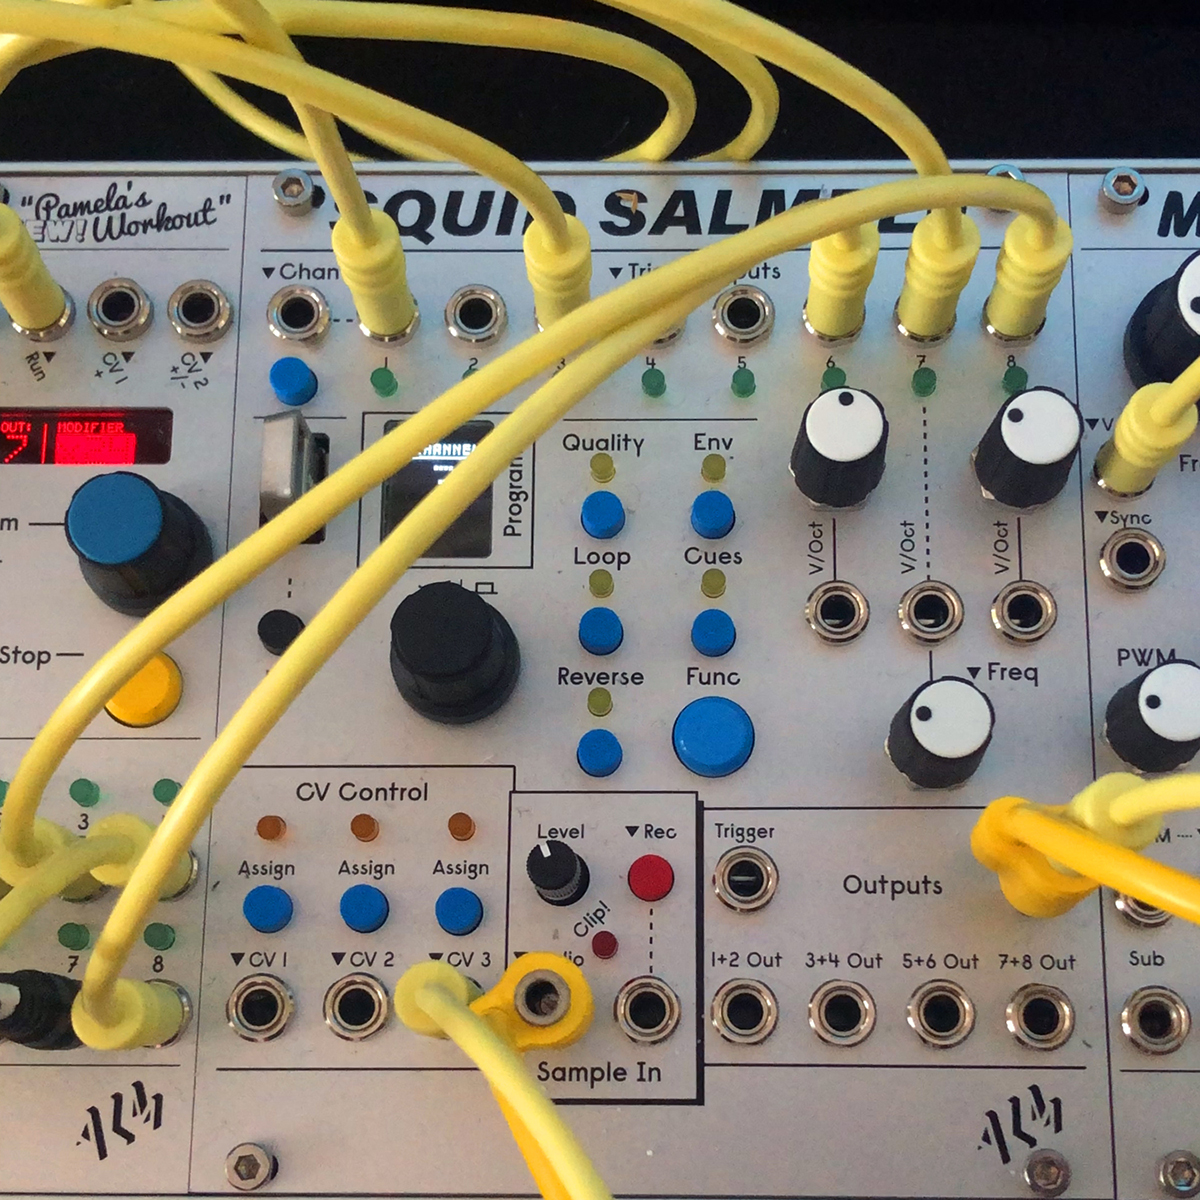 ALM's Squid Salmple at Superbooth 2019